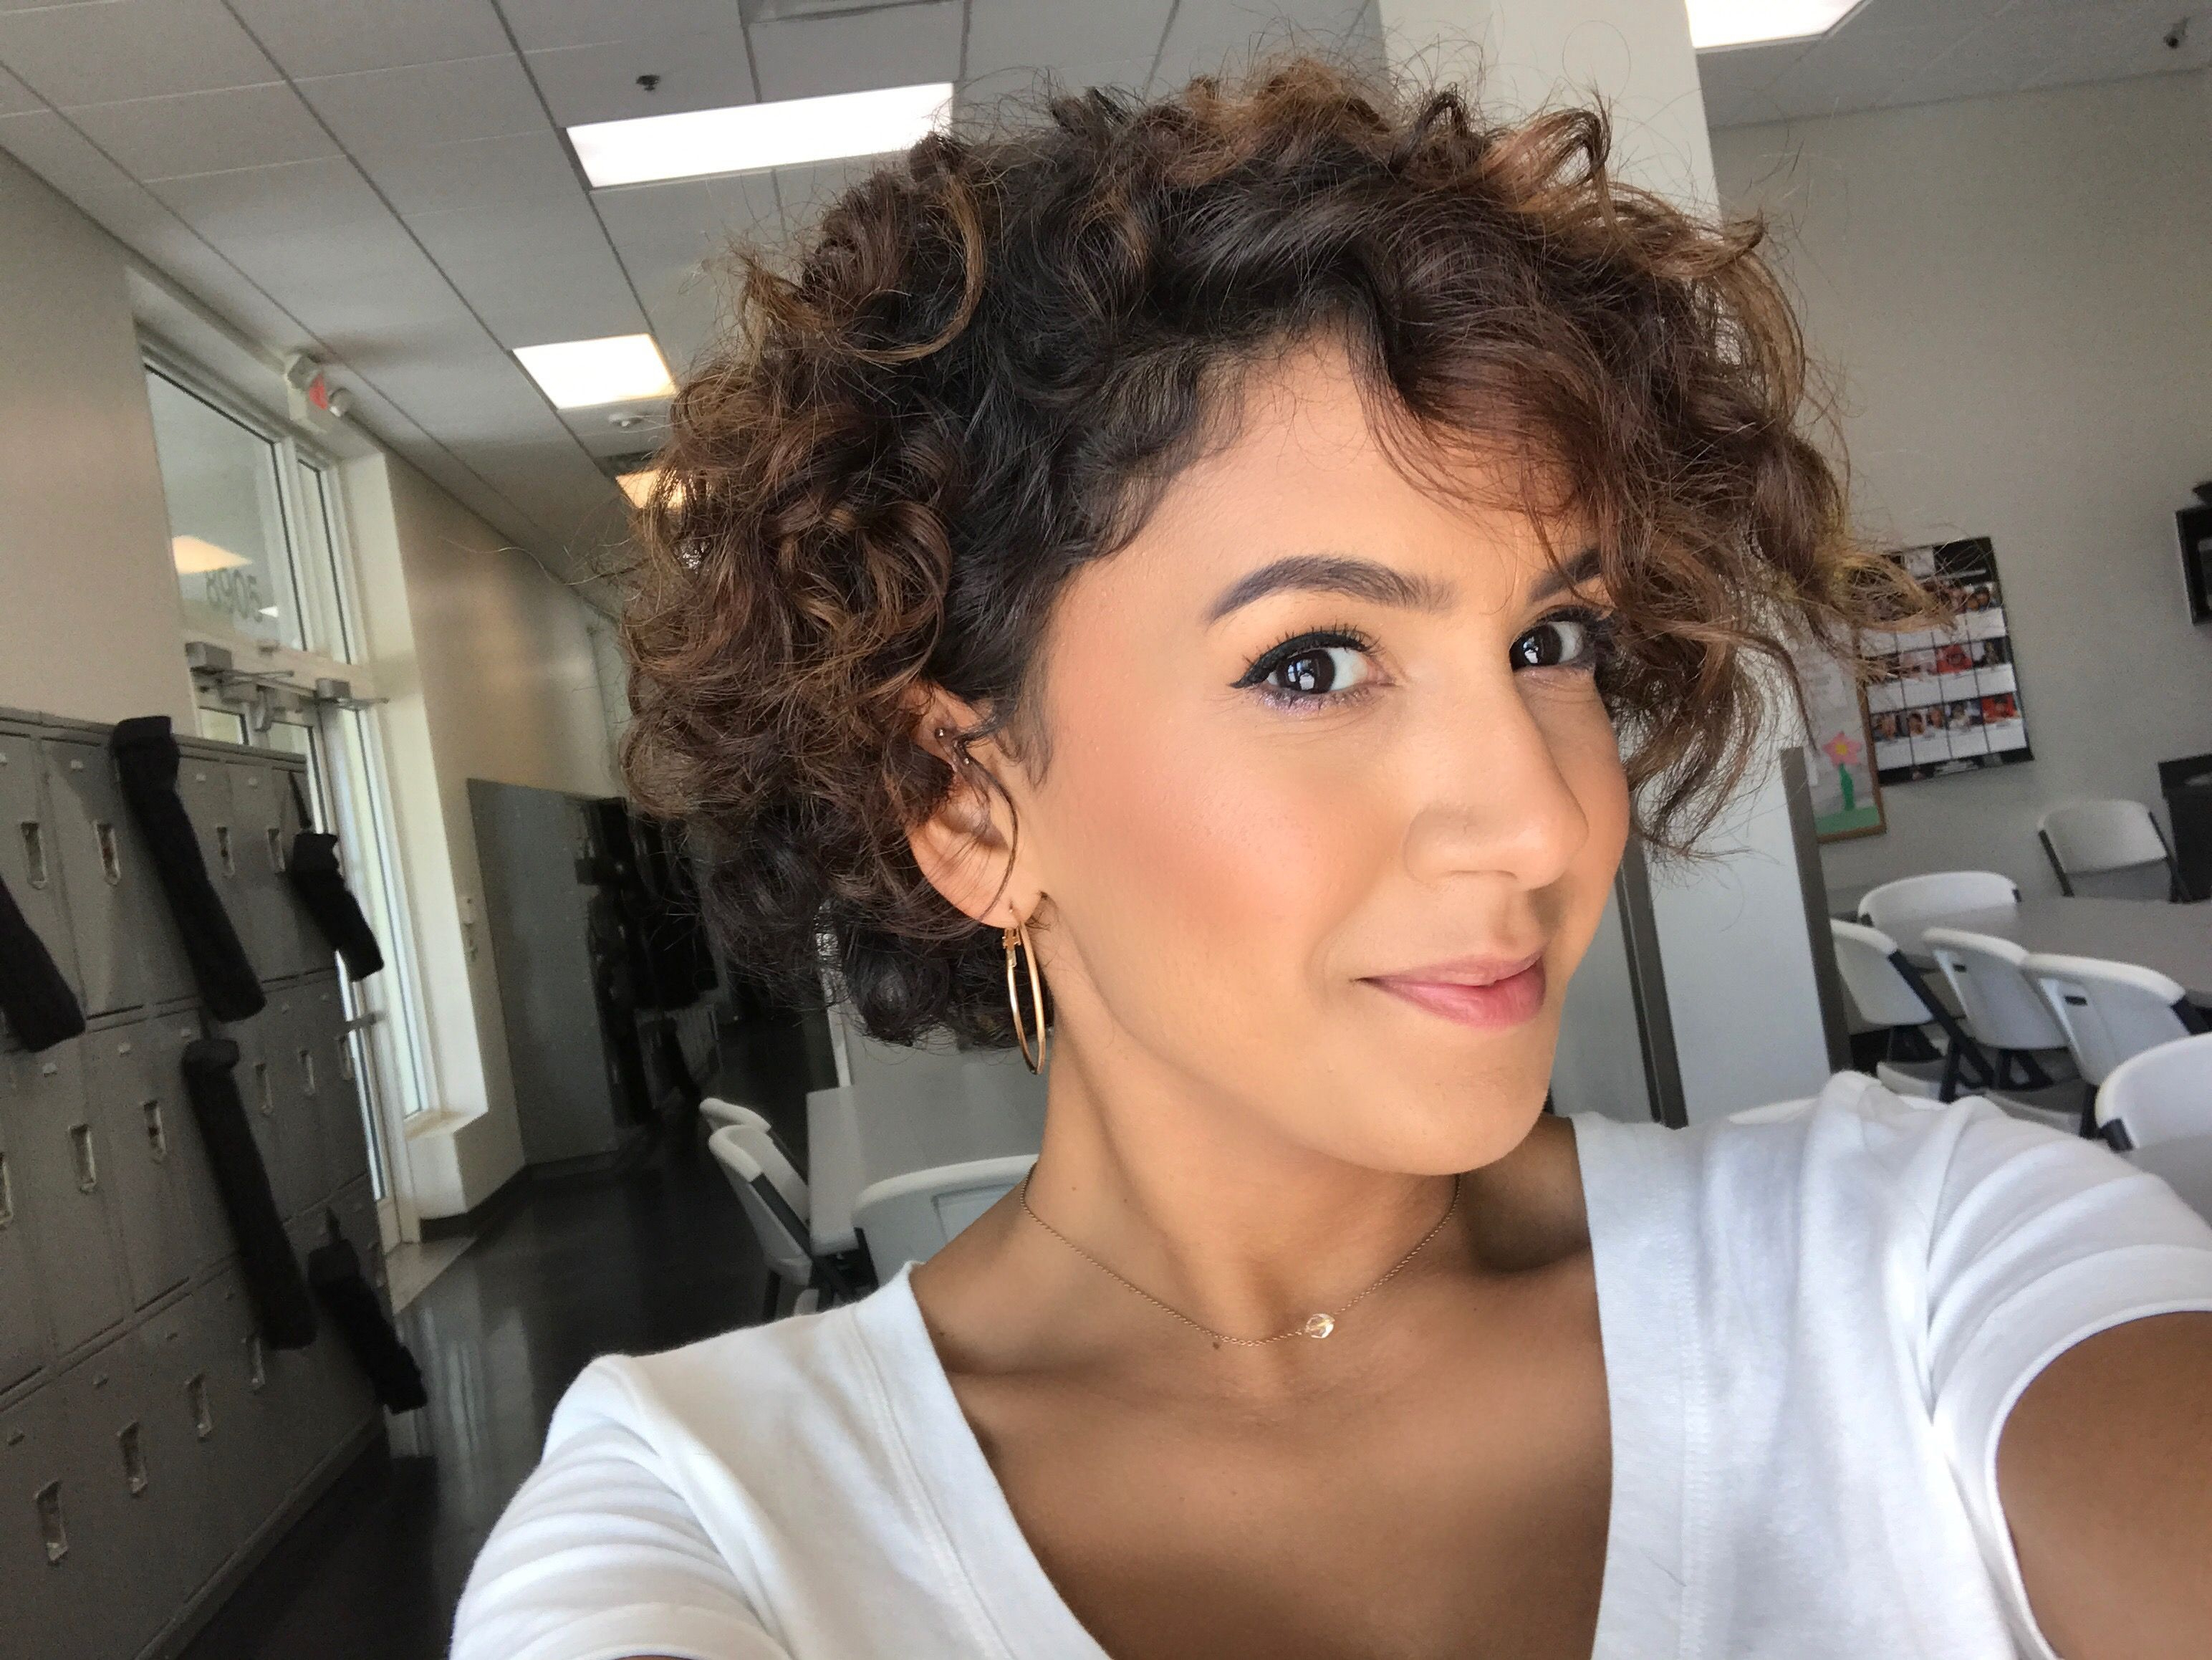 Amusing Short Curly Hairstyles Bob On Short Curly Bob Pixie Cut Throughout Short Curly Haircuts Tumblr (View 2 of 25)